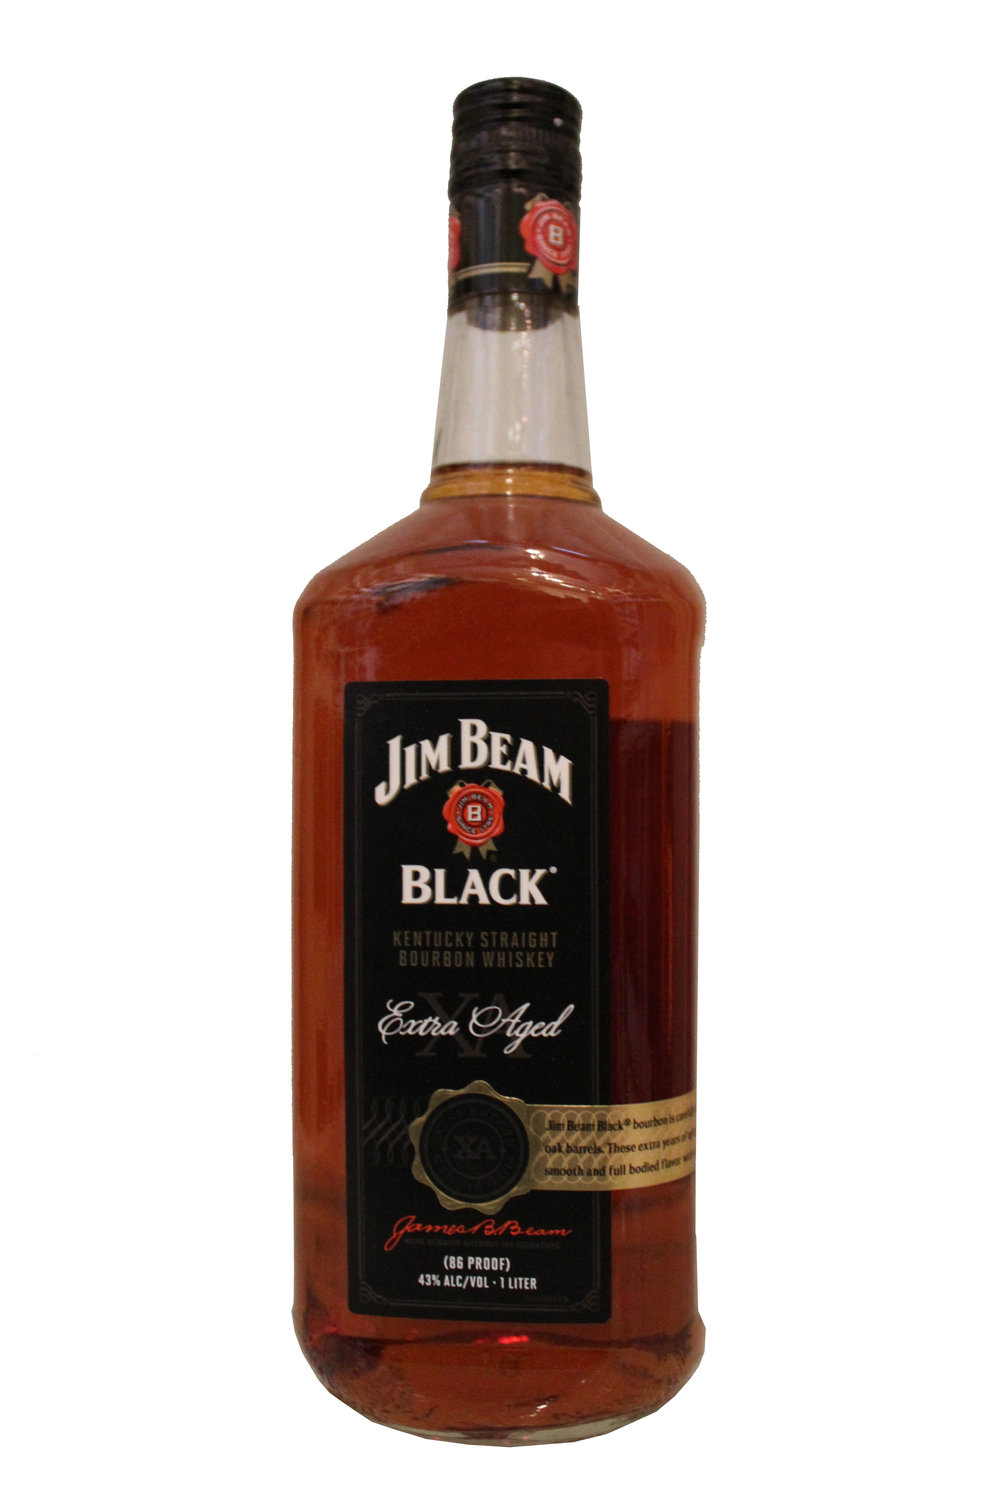 Aged Bourbon Whiskey  Jim Beam Black,  Kentucky